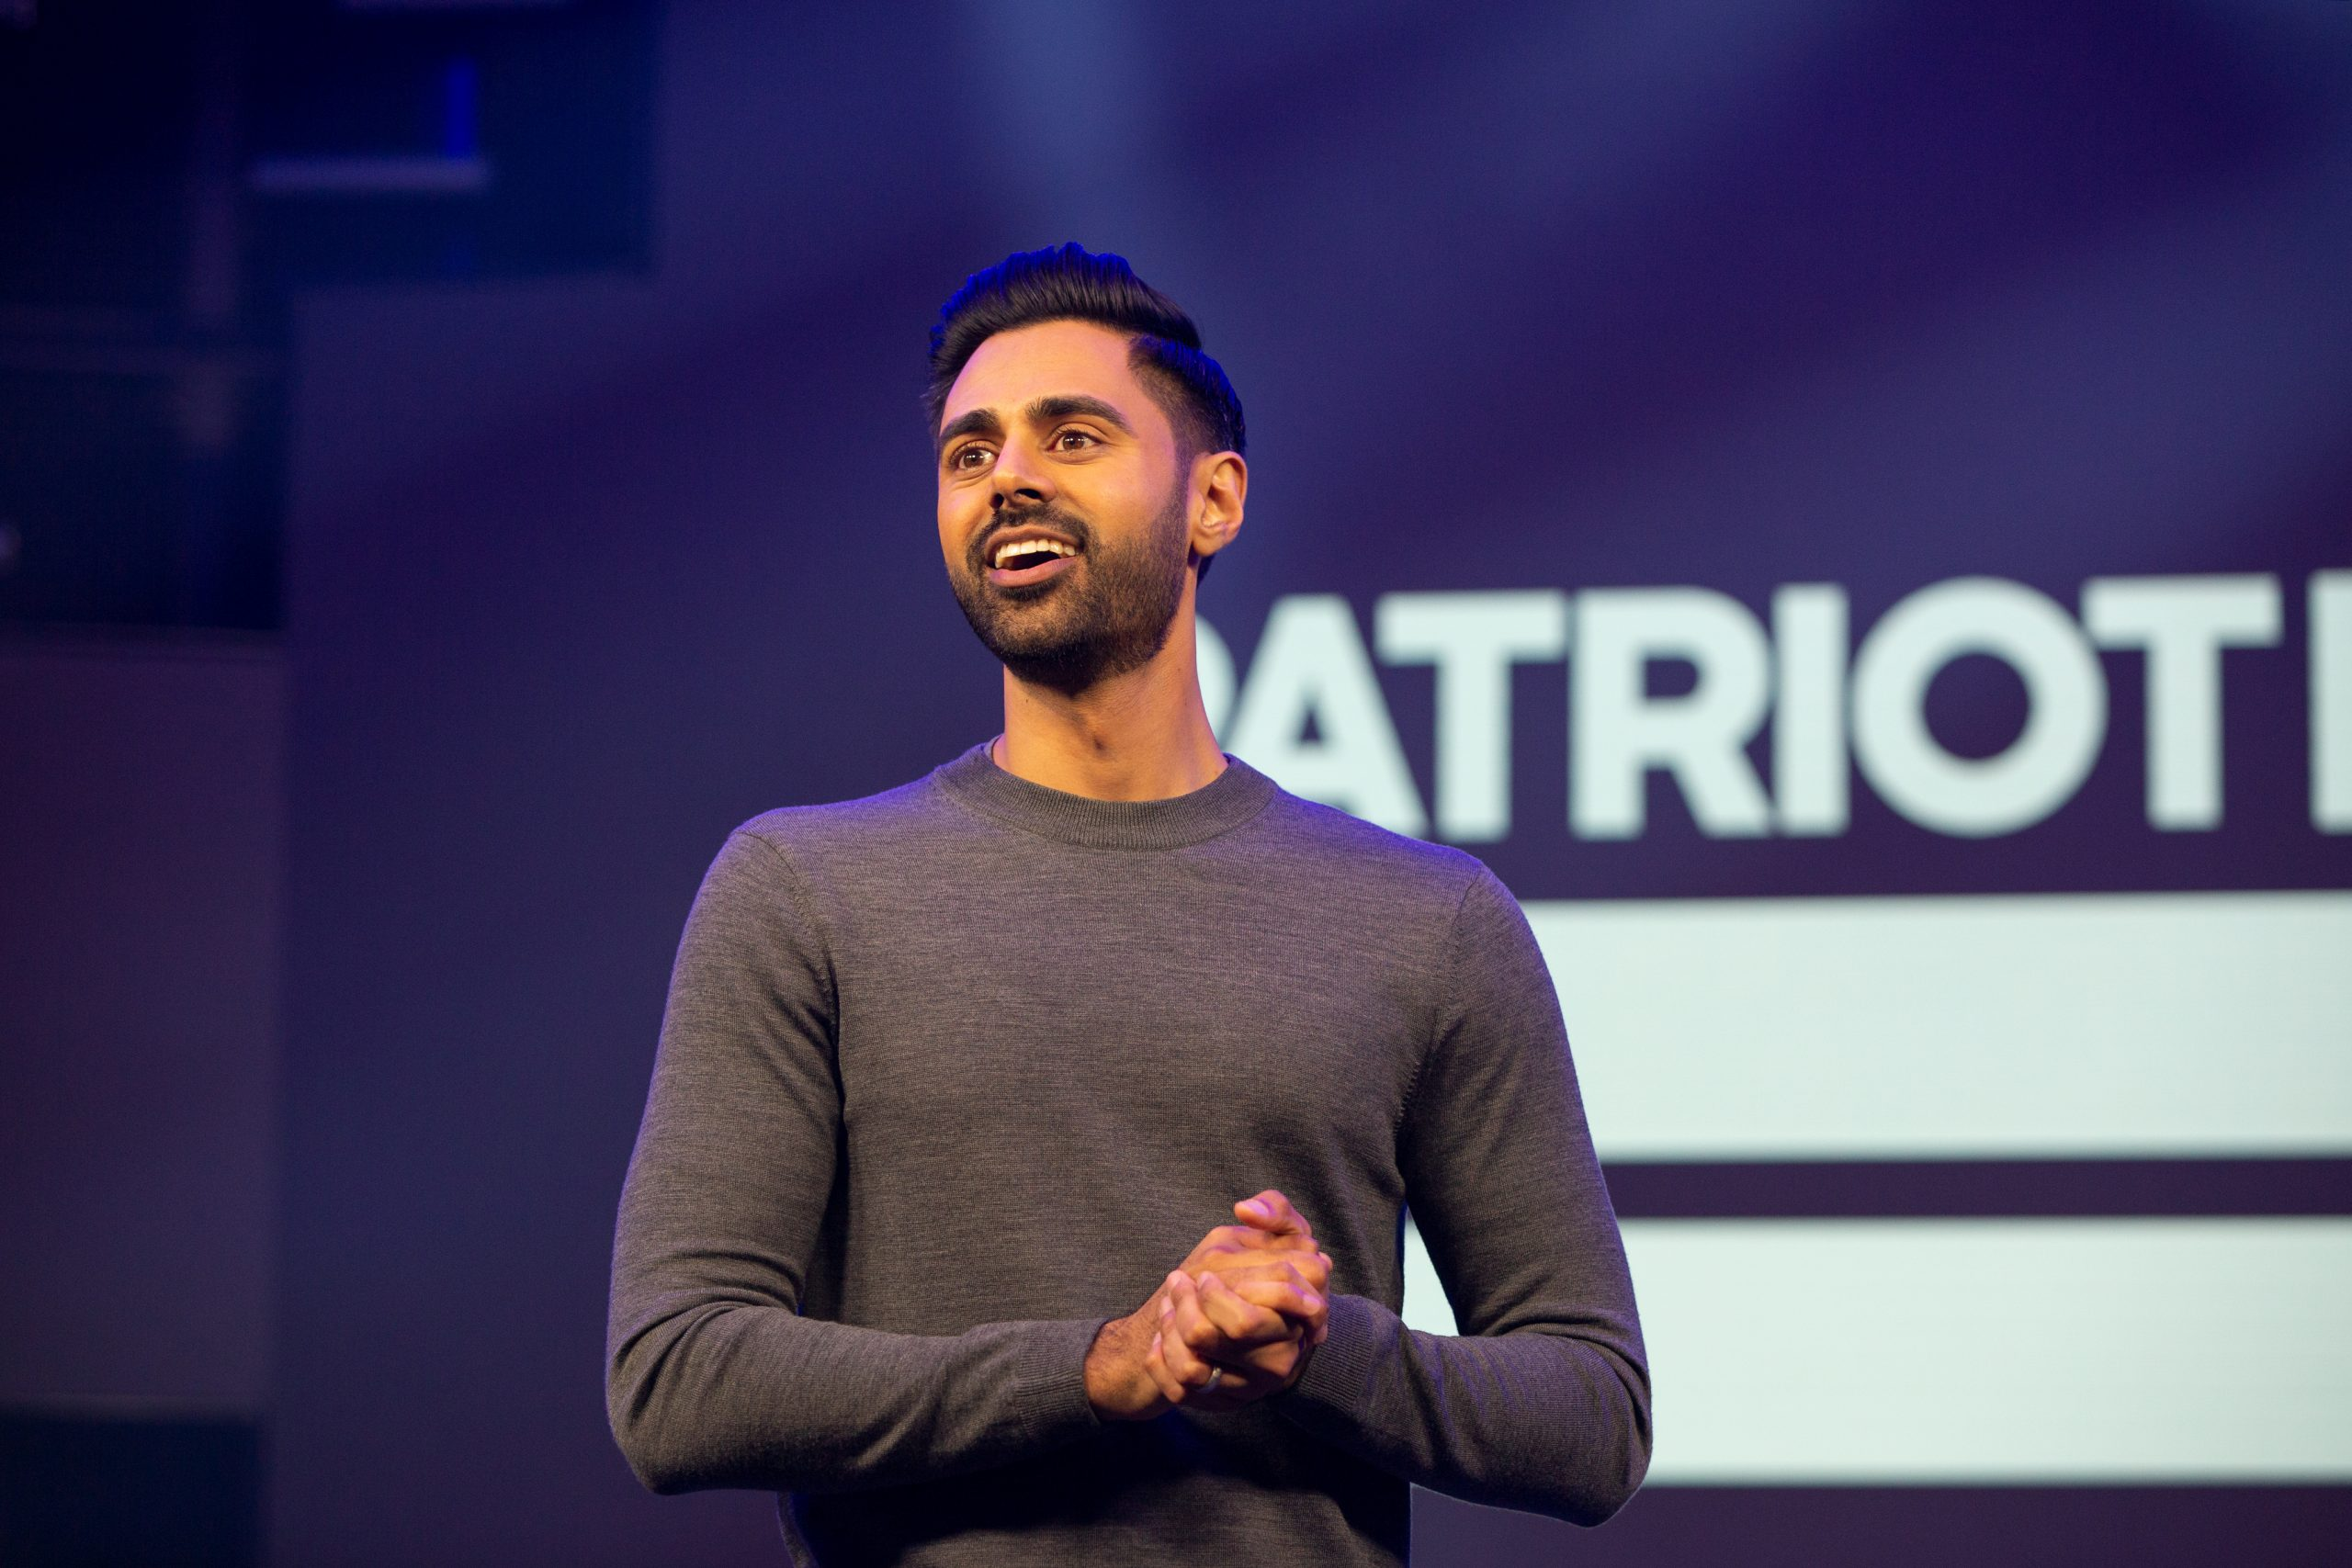 Patriot Act with Hasan Minhaj - Featured Image - Cancellation